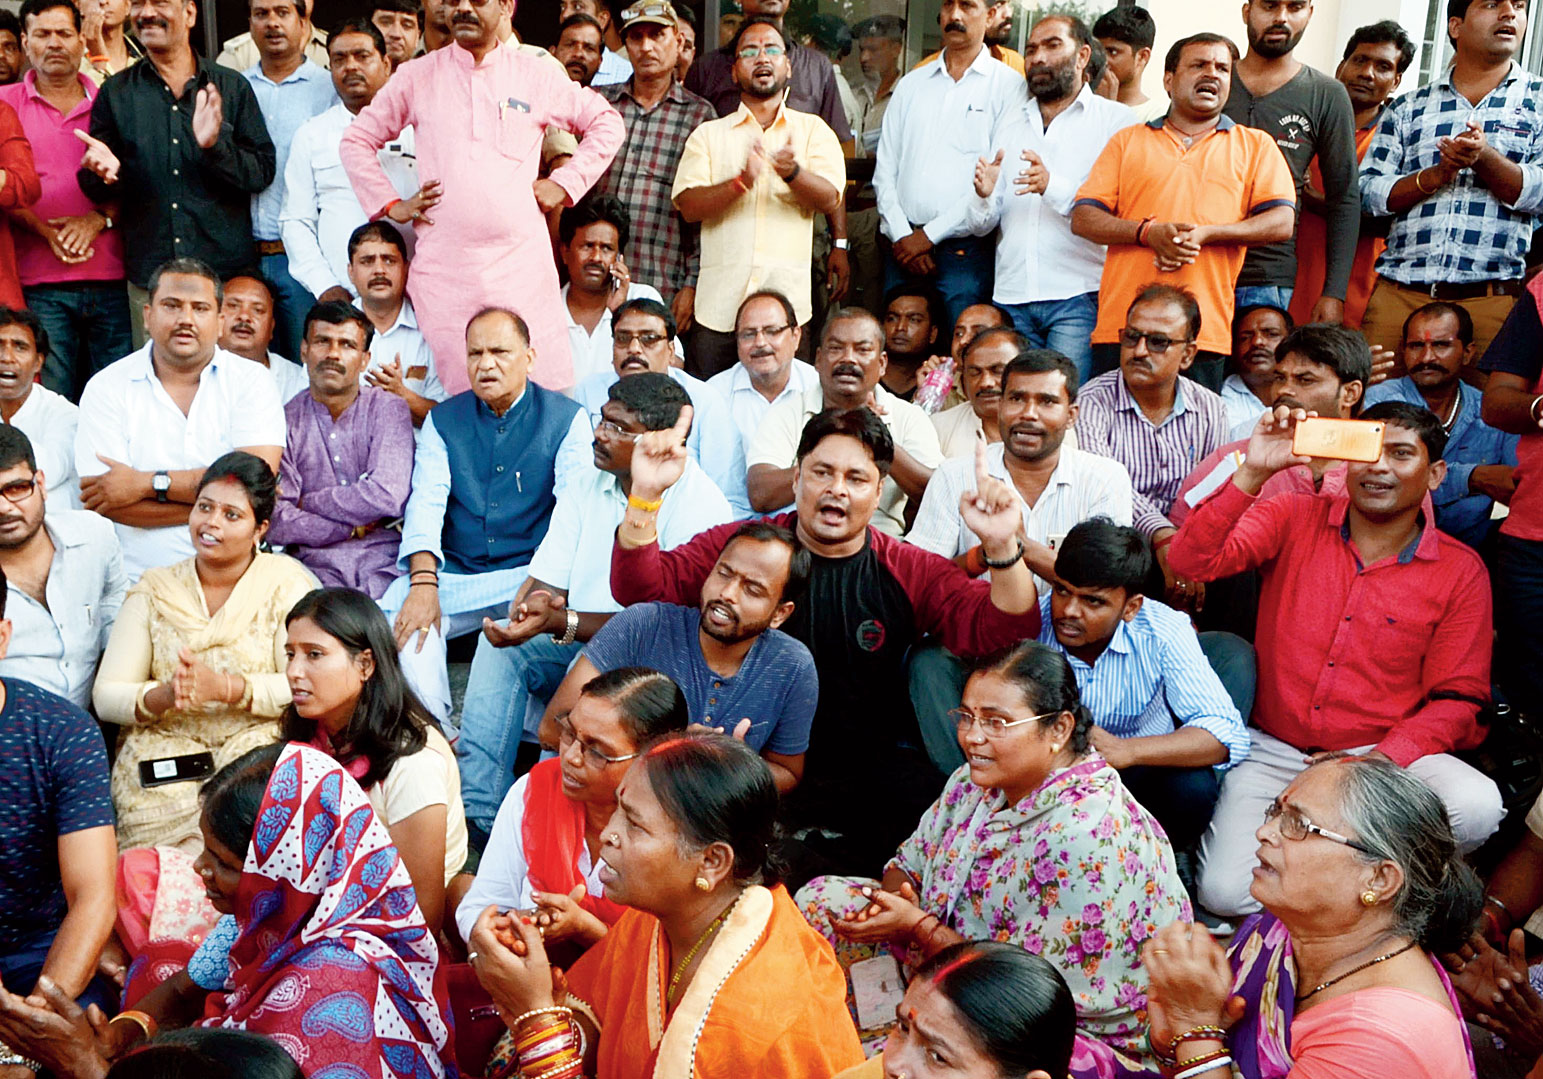 Urban development minister CP Singh at the dharna outside Kotwali thana in Ranchi on Wednesday.